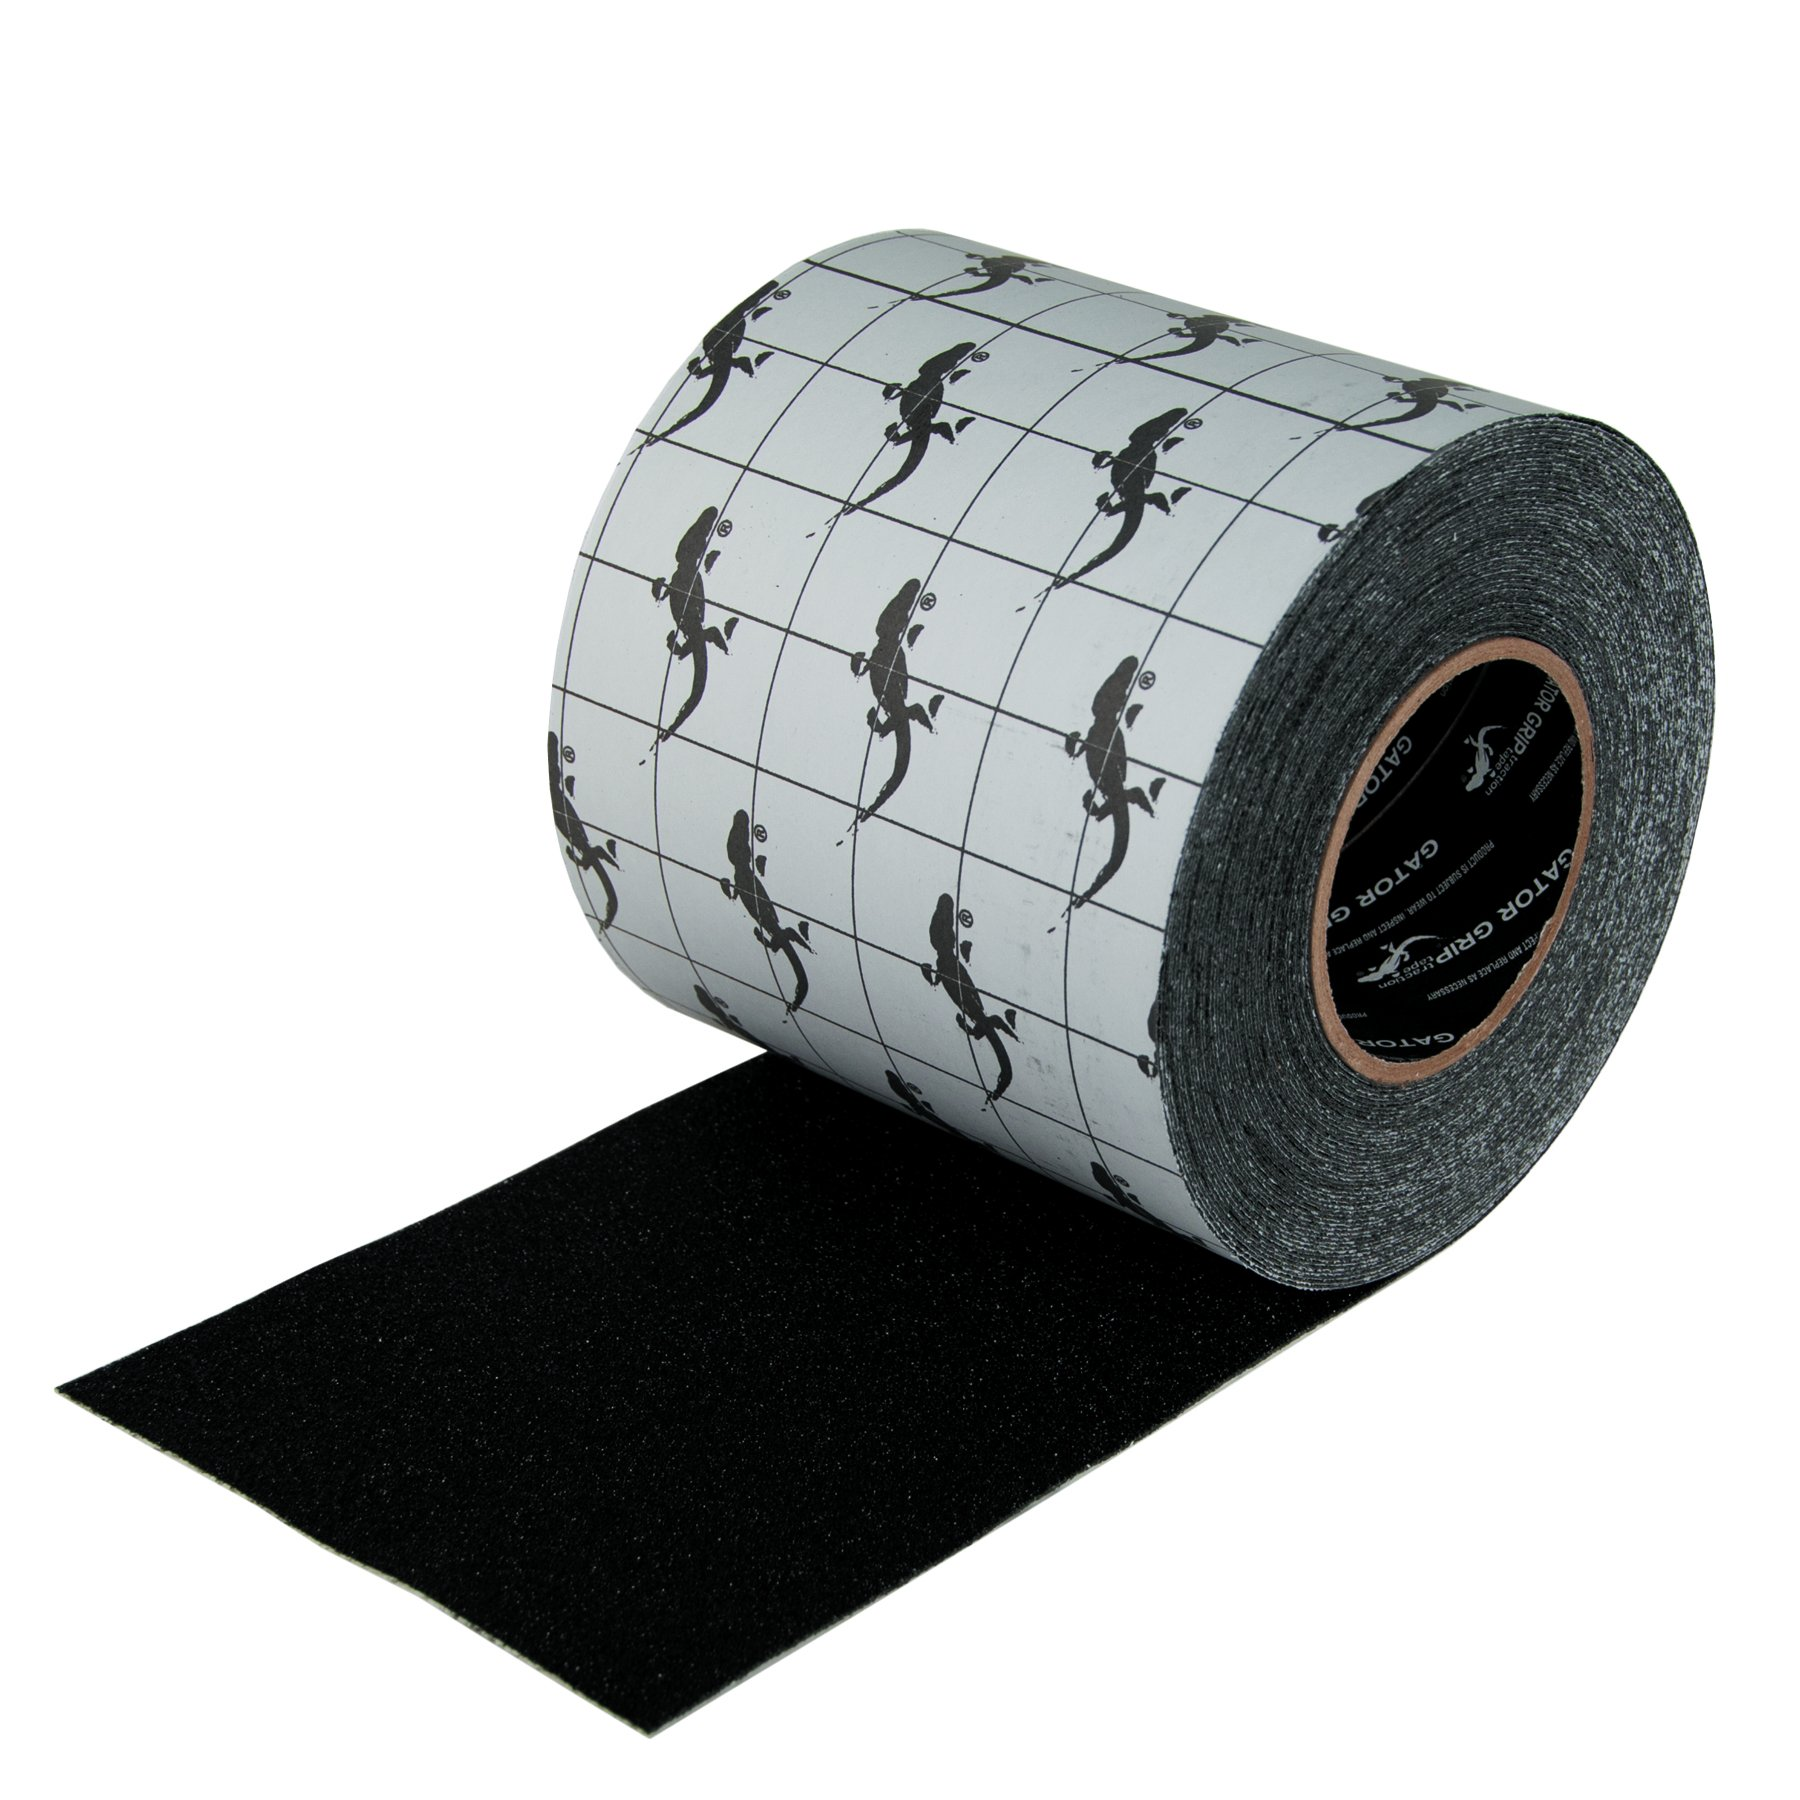 Gator Grip  : SG3106B Premium Grade High Traction Non Slip 60 Grit Indoor Outdoor Anti-Slip Tape, 6 Inch x 60 Foot, Black